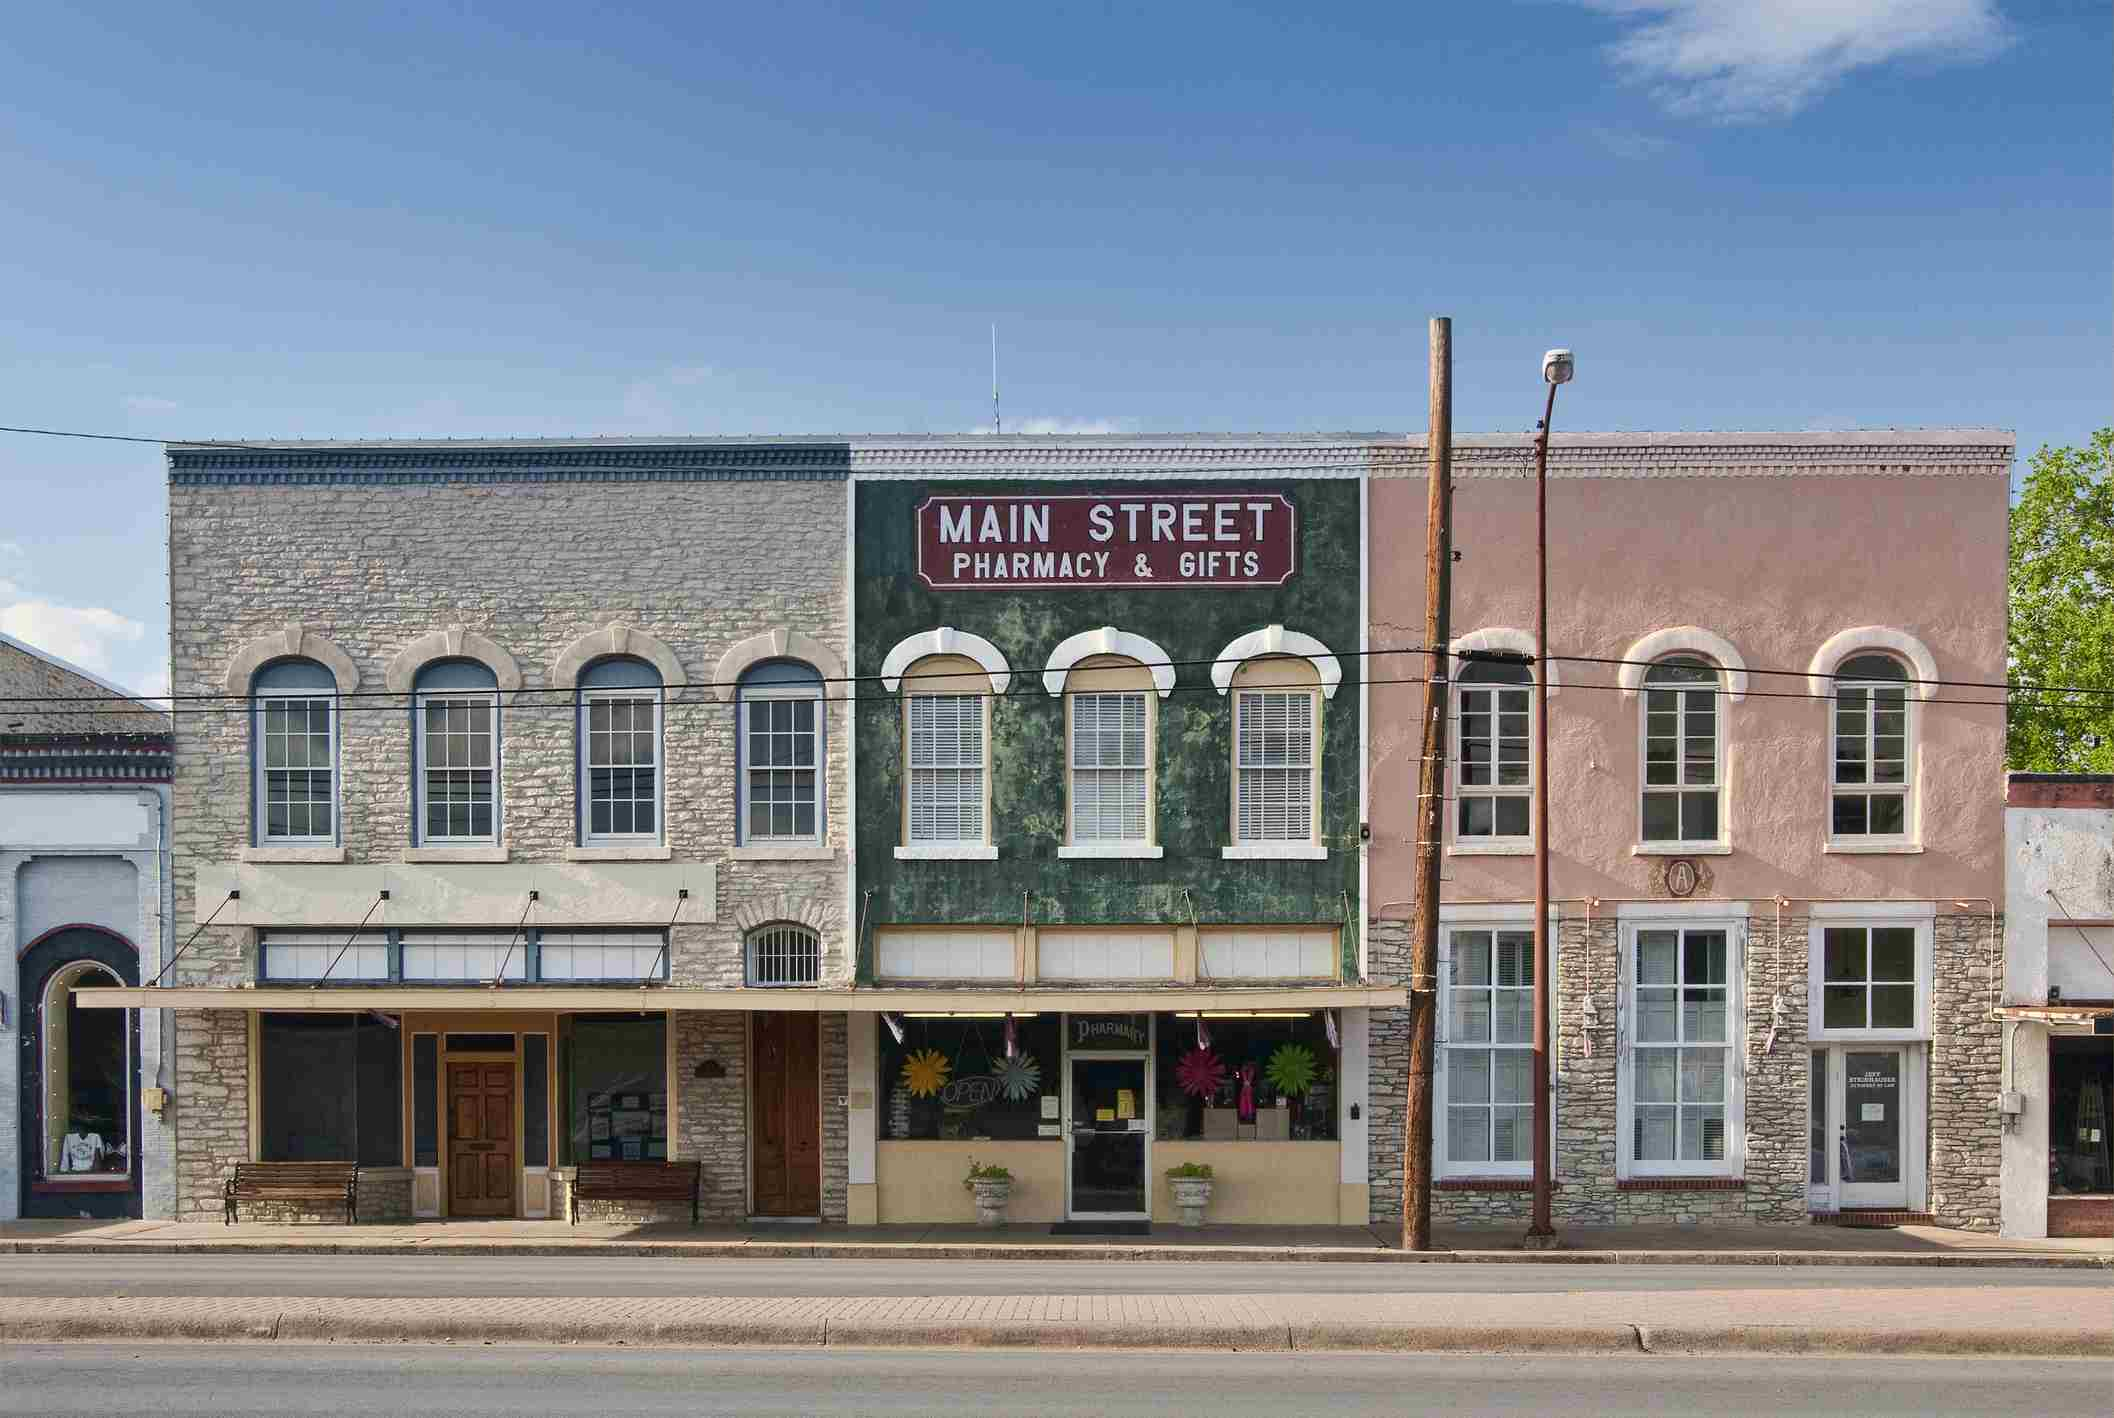 Storefronts in Flatonia, Texas